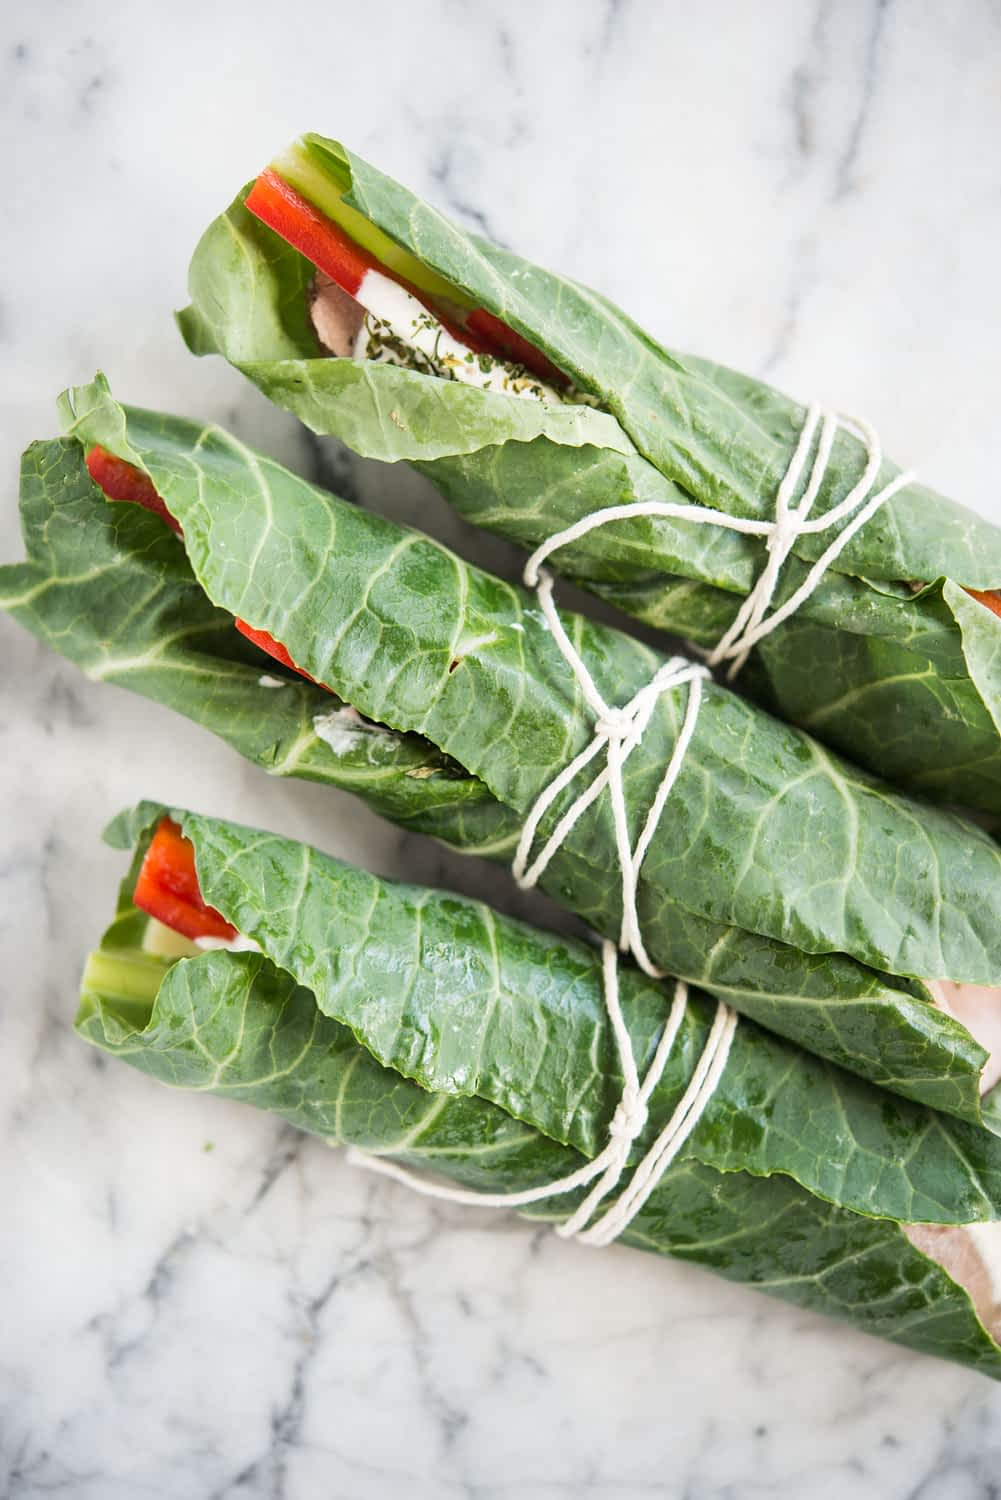 3 roast beef wraps in collard green leaves rolled up and tied with string on a marble board